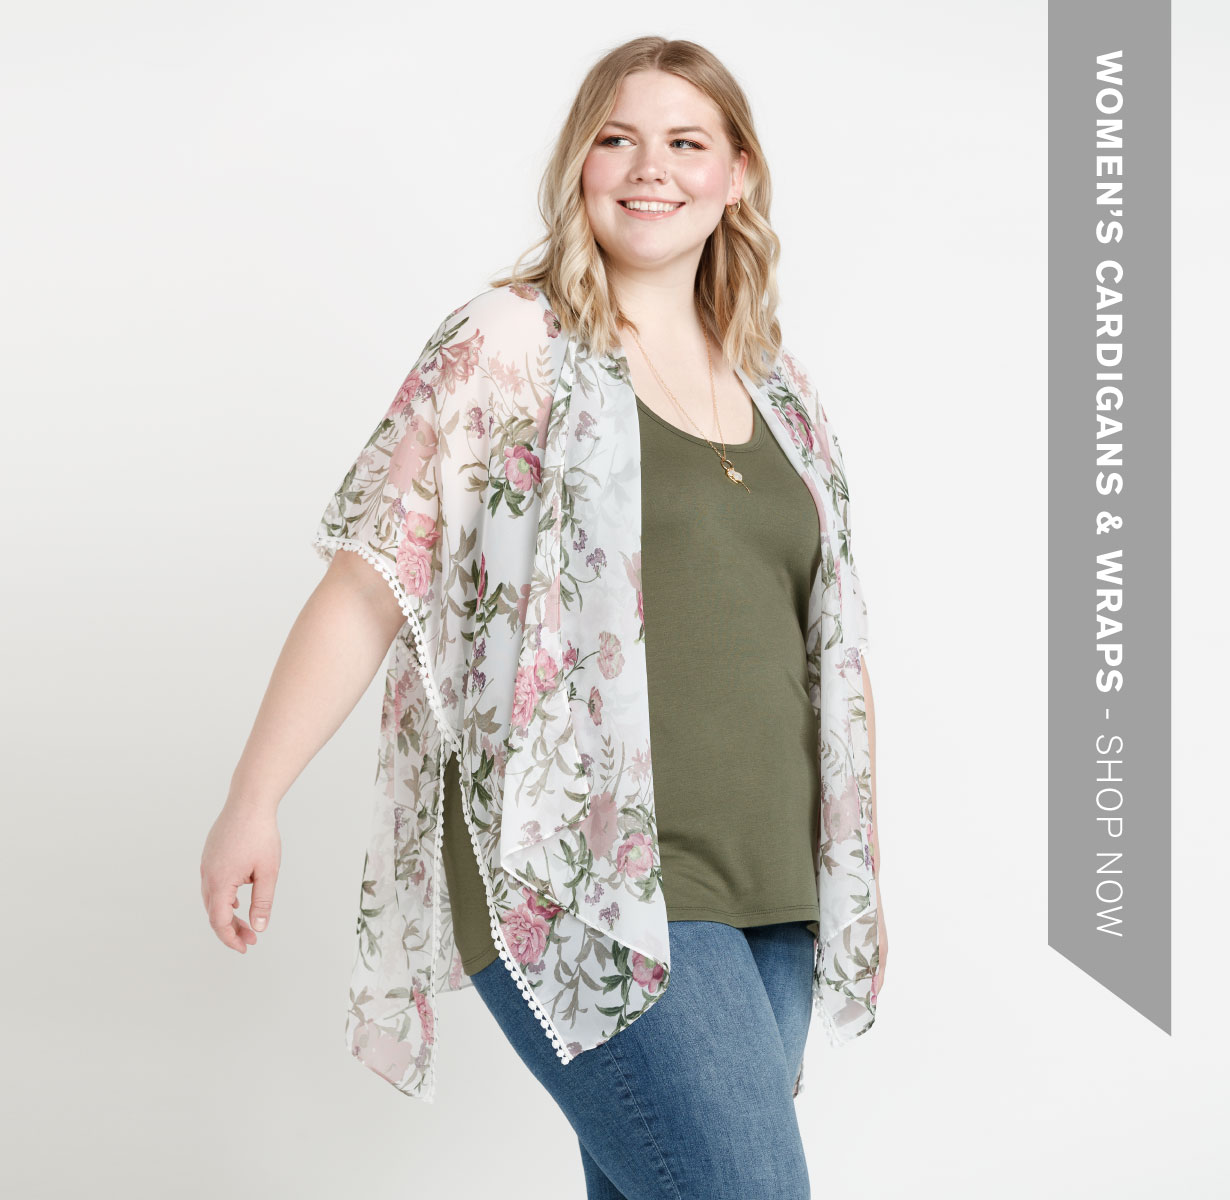 Women's cardigans and wraps.